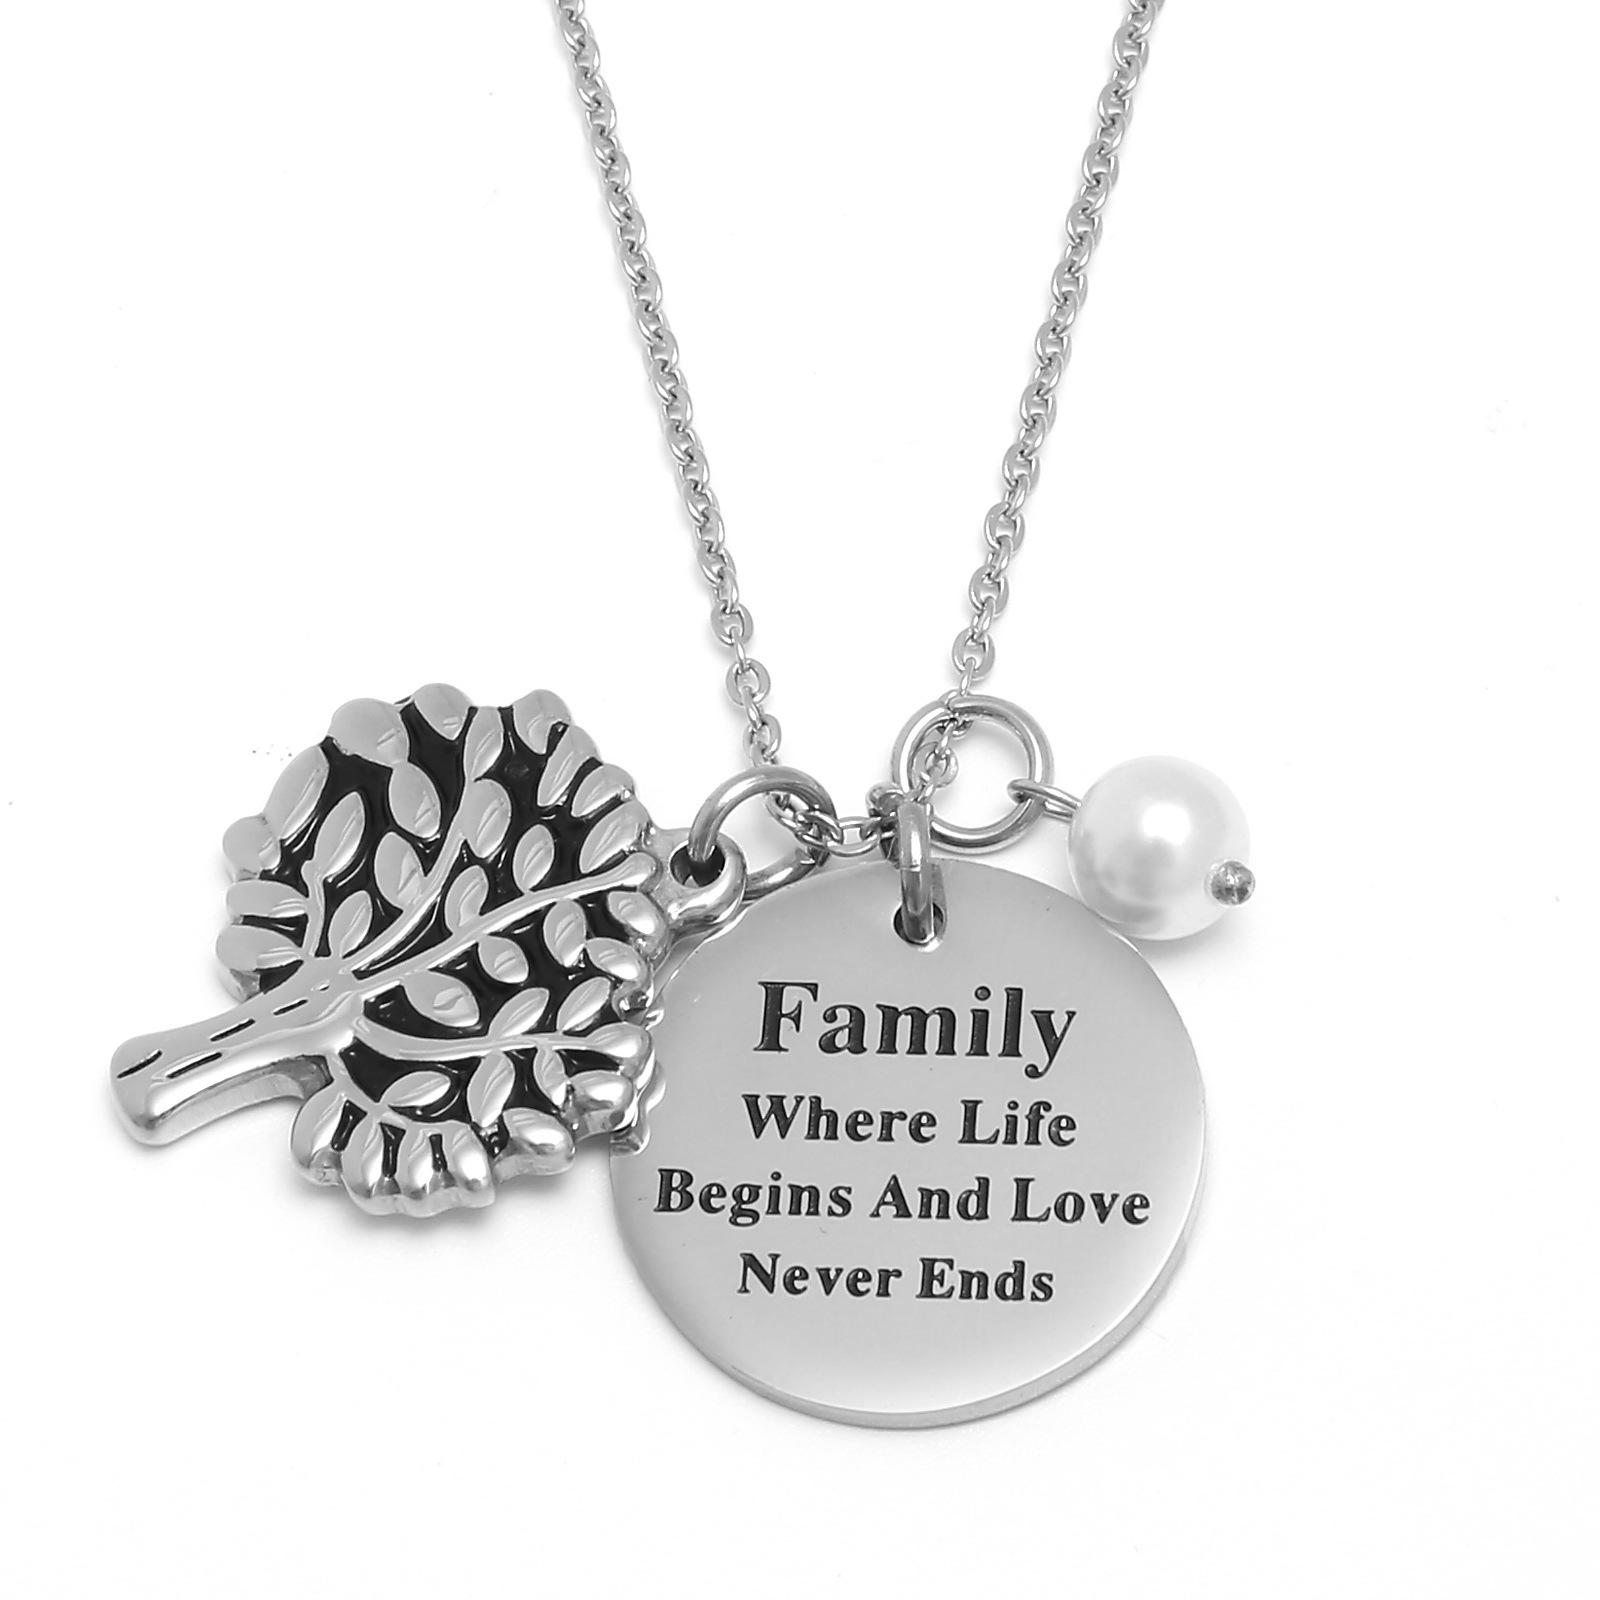 Us 21 stainless steel family love tree pendant necklace www us 21 stainless steel family love tree pendant necklace since12 aloadofball Image collections